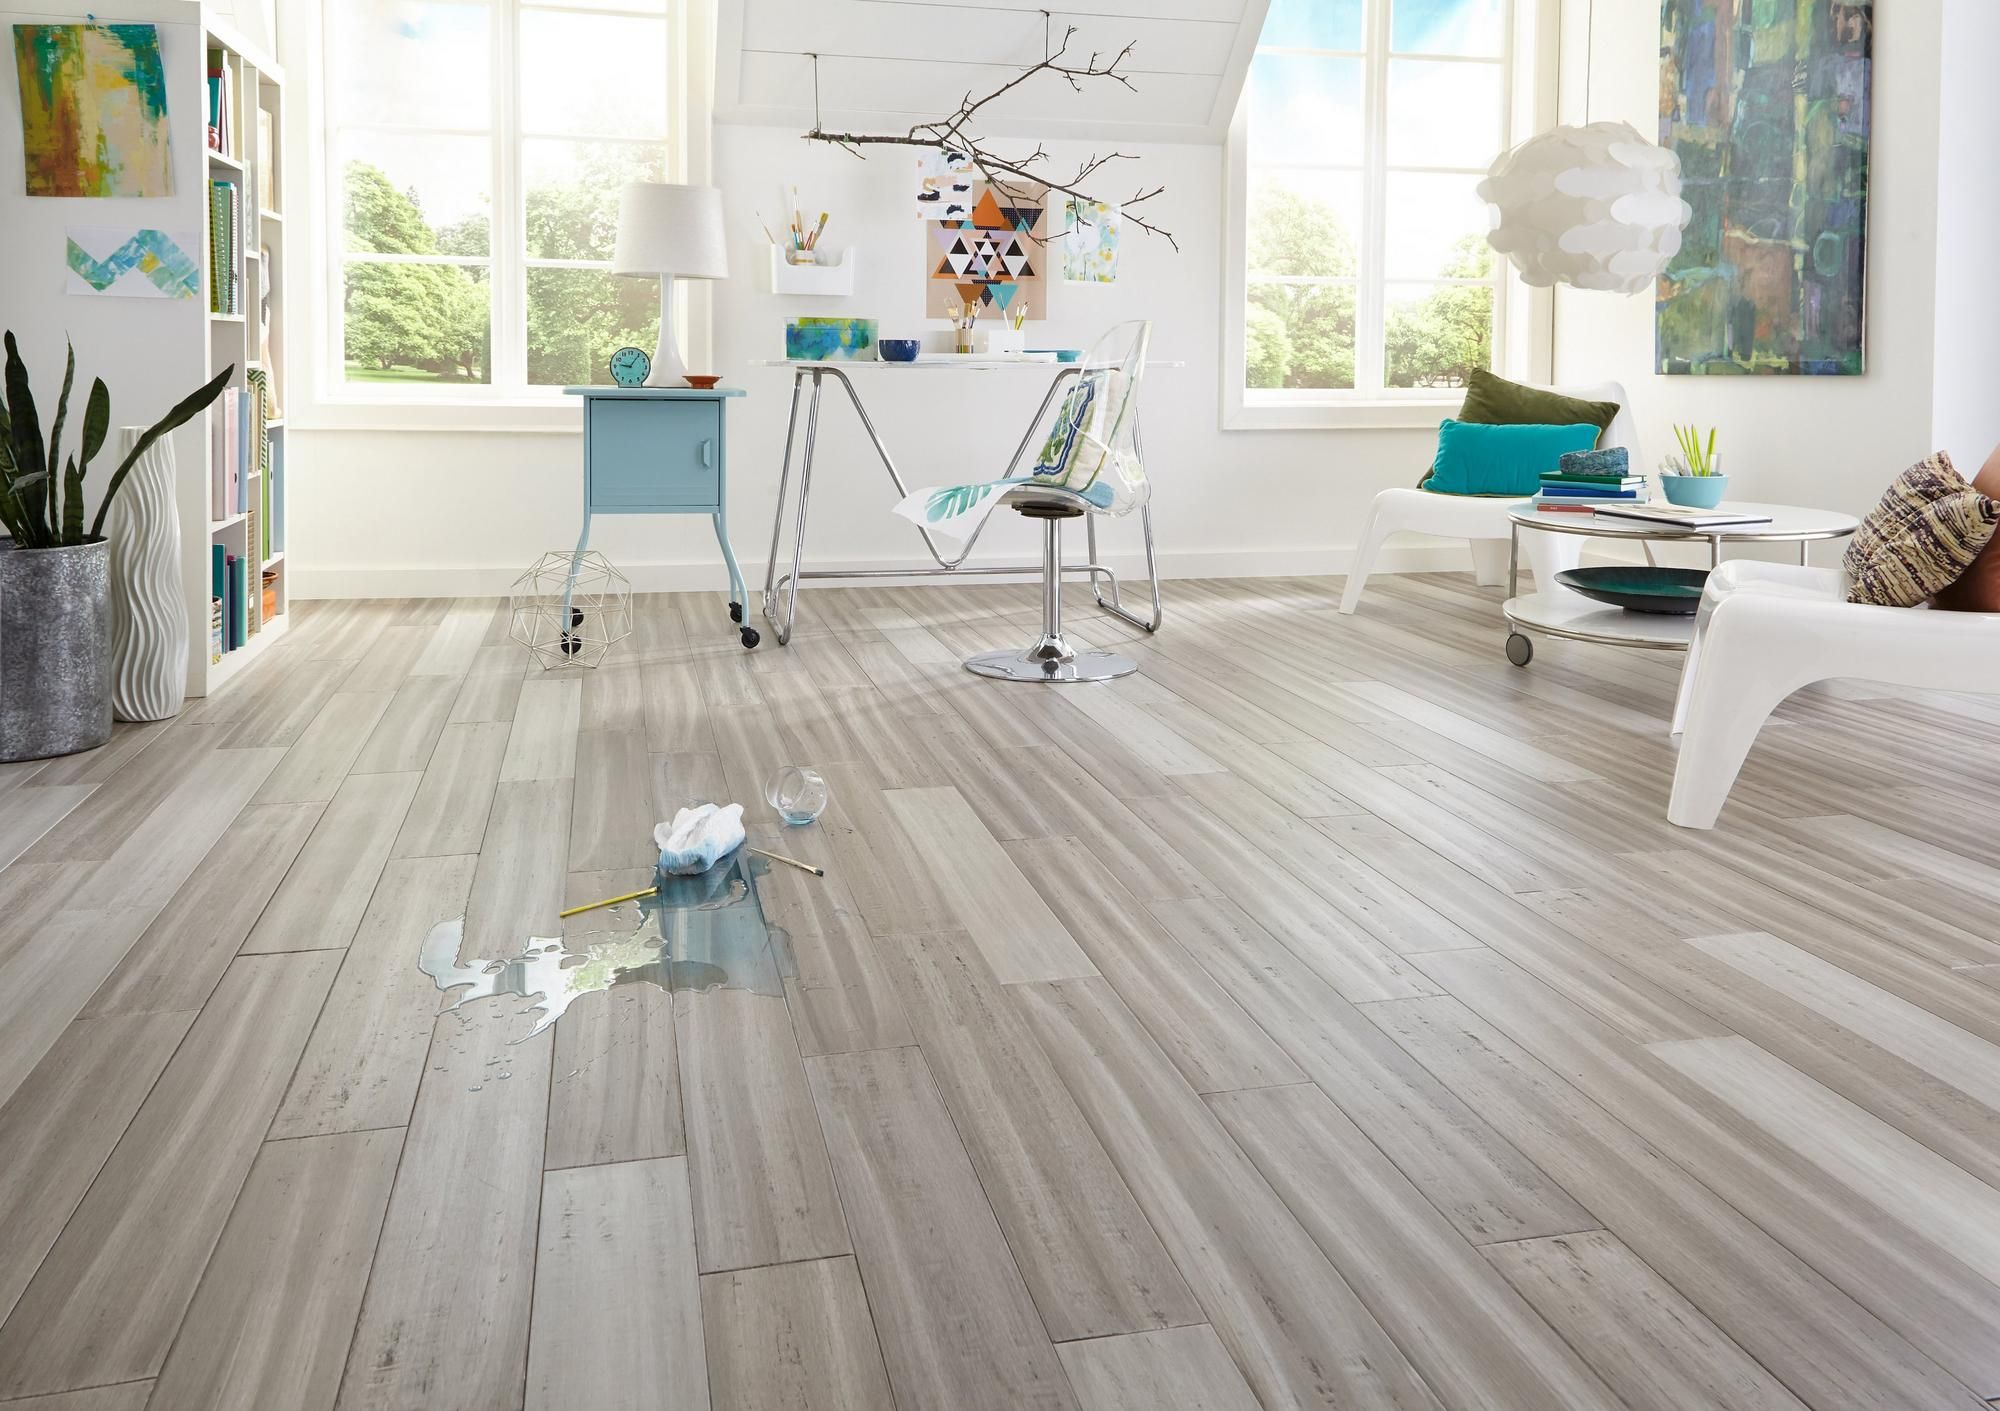 Types of flooring for living room #types #of #flooring #for #living #room